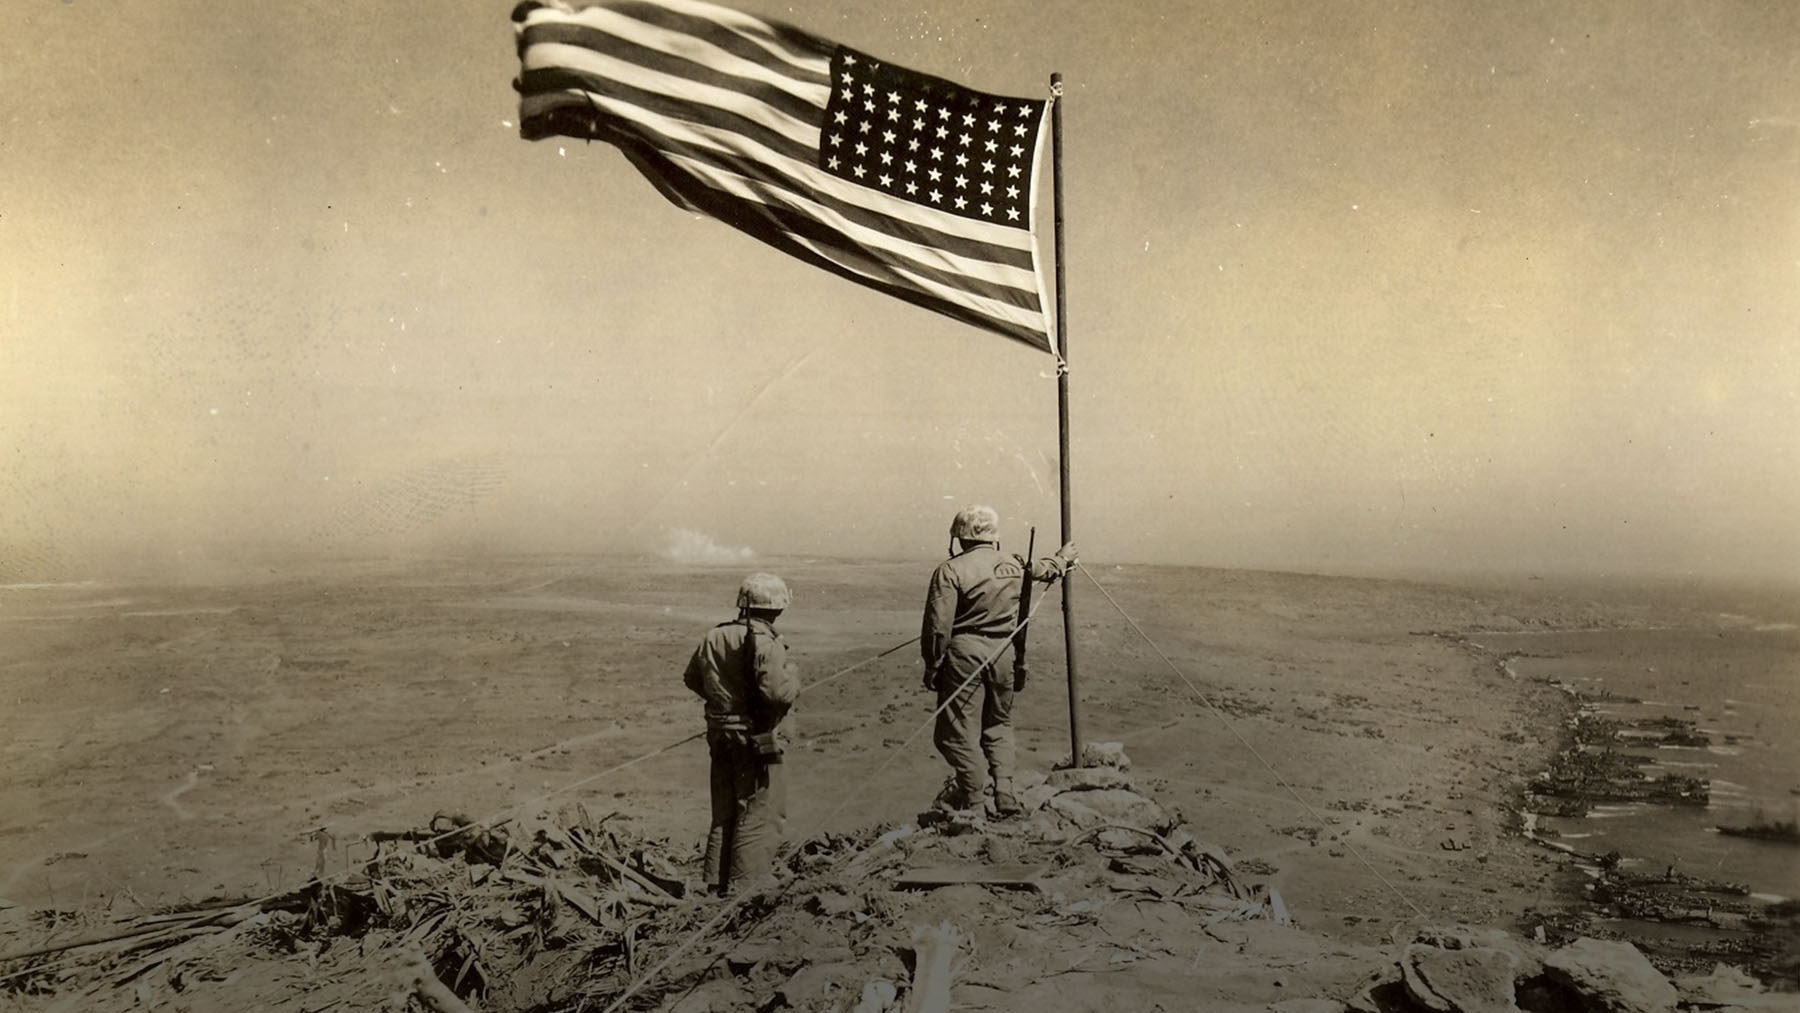 Marines raise flag on Mount Suribachi